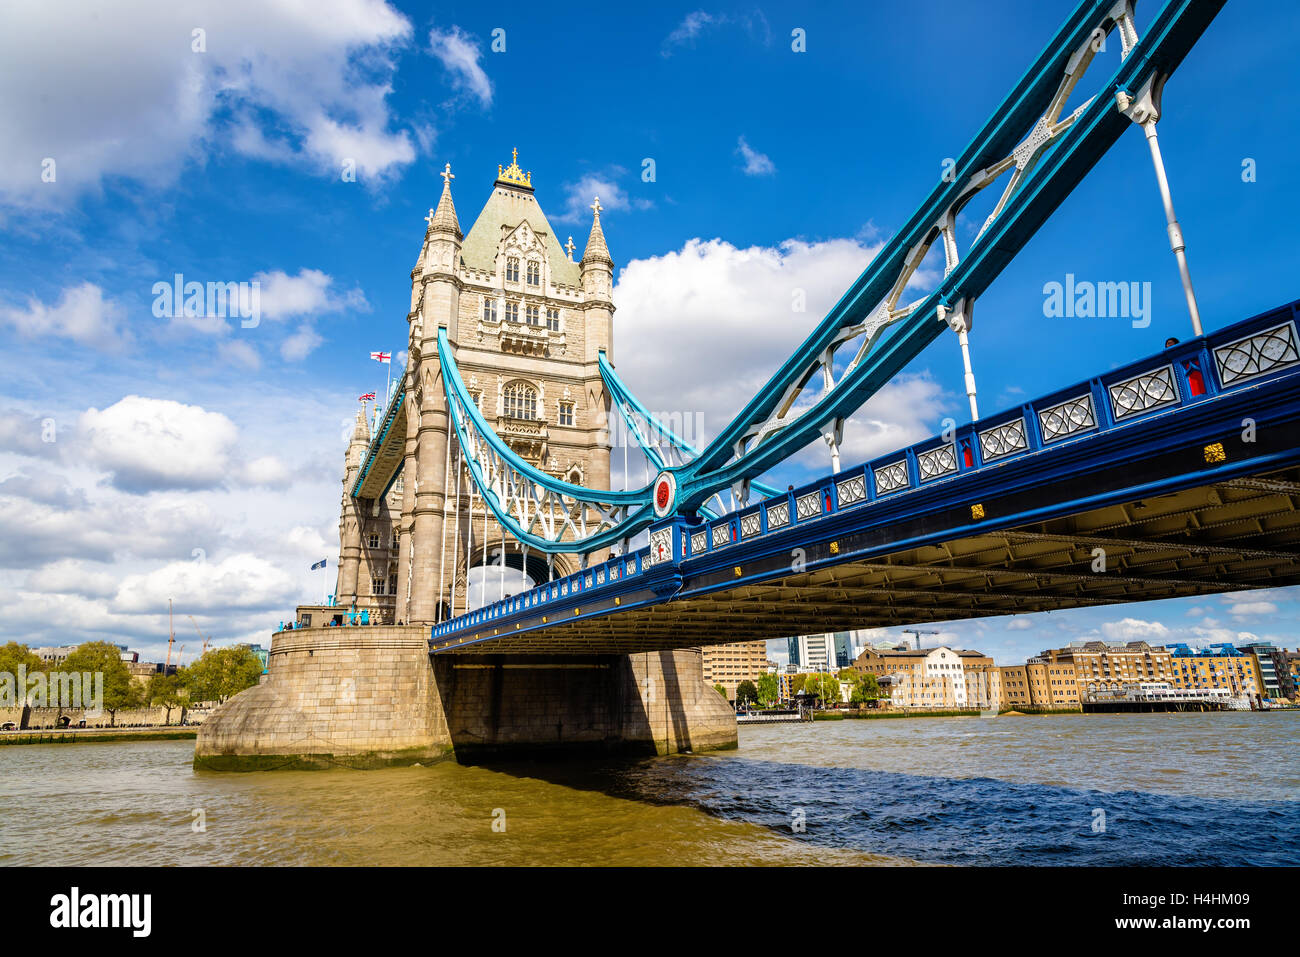 Tower Bridge, a symbol of London - England - Stock Image